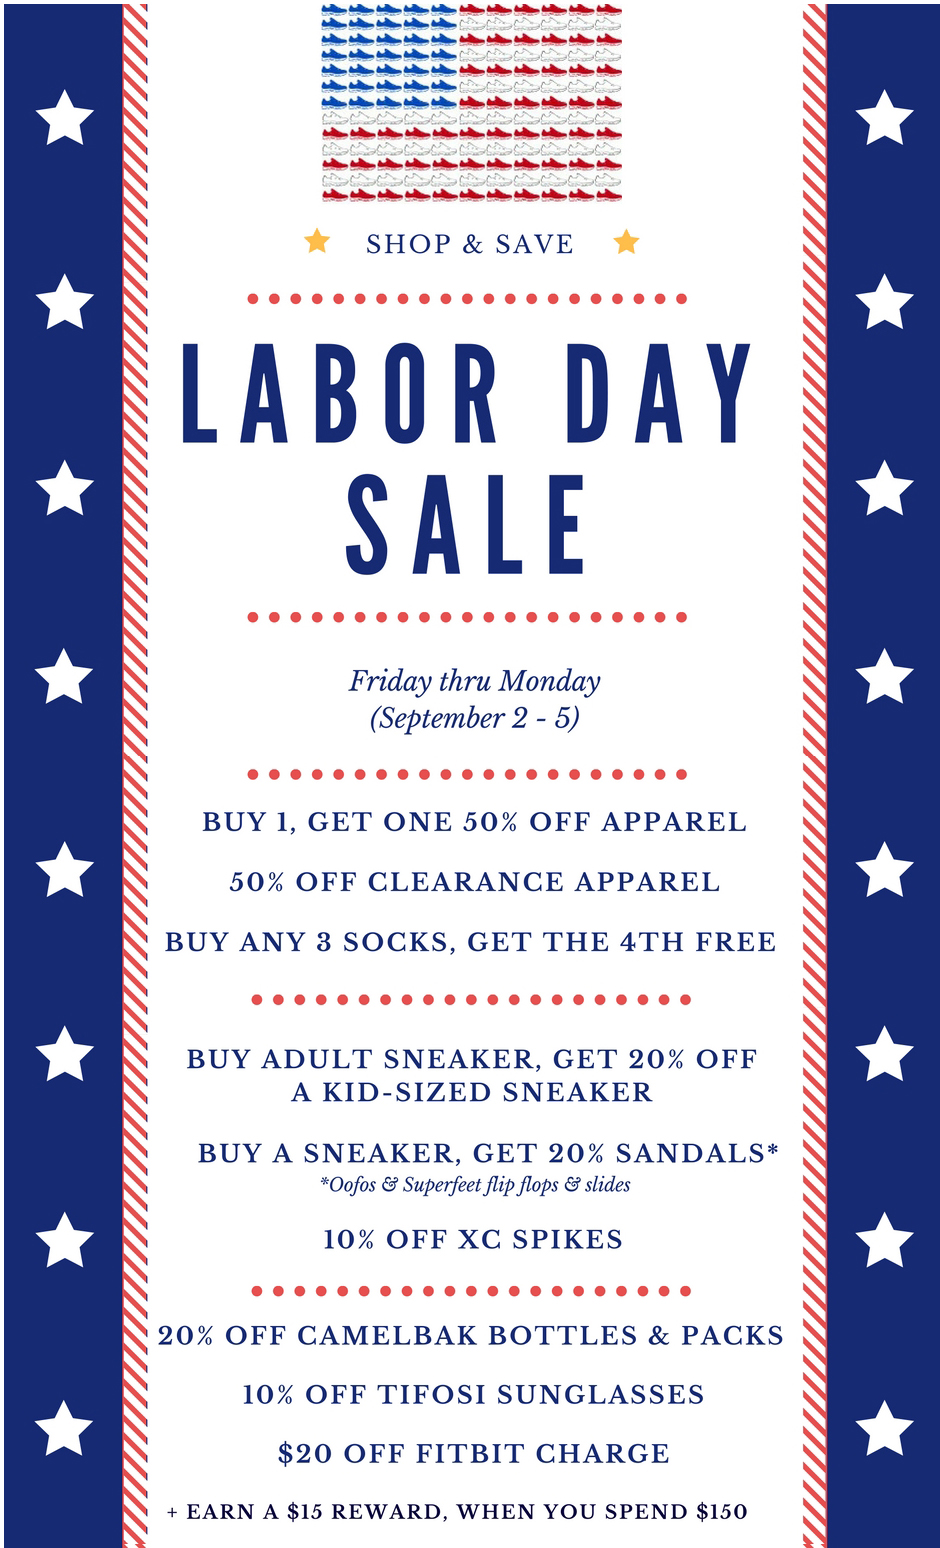 Labor Day Sale Details